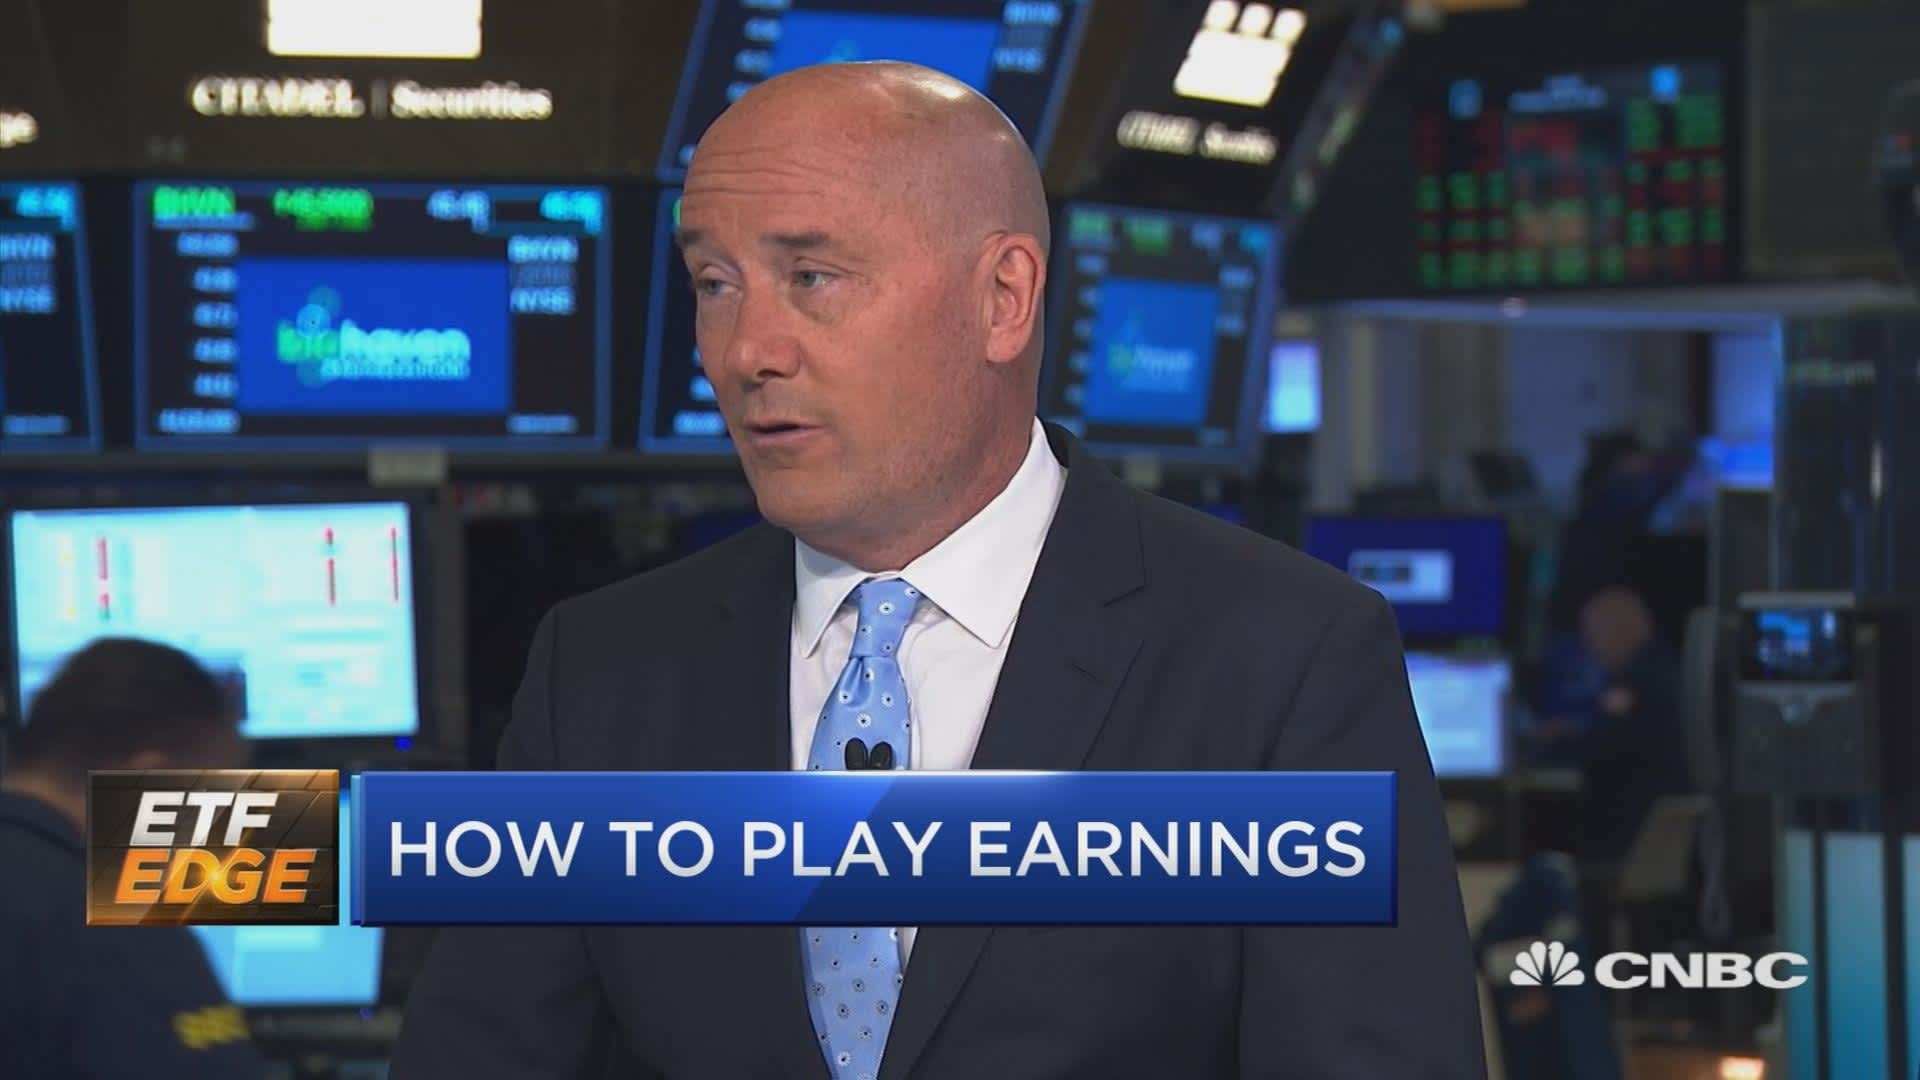 With stocks at all-time highs, here's how to navigate earnings season using ETFs